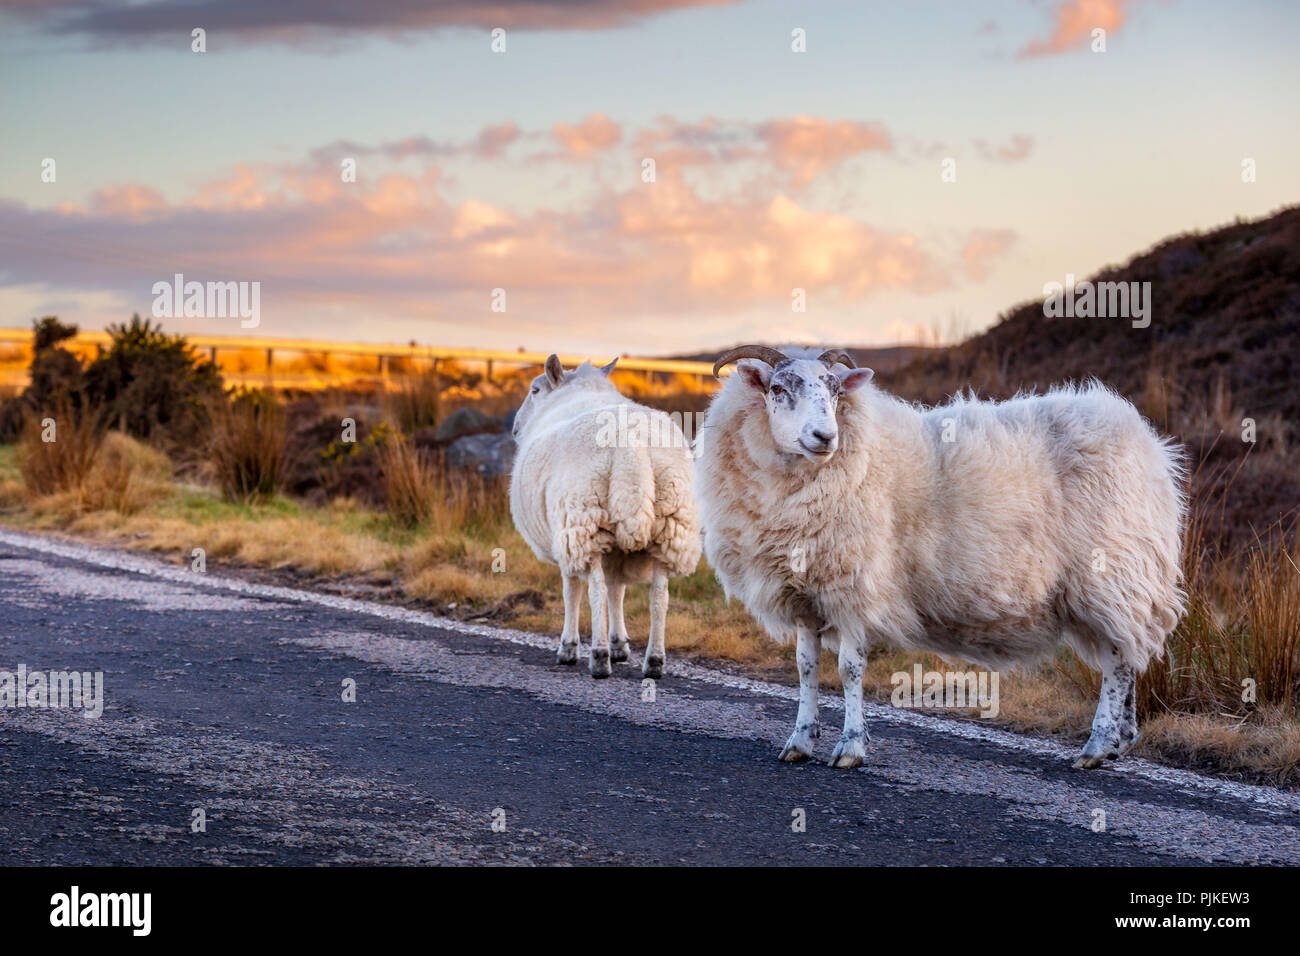 A few sheeps on the highway A836 in the scottish highlands - Stock Image